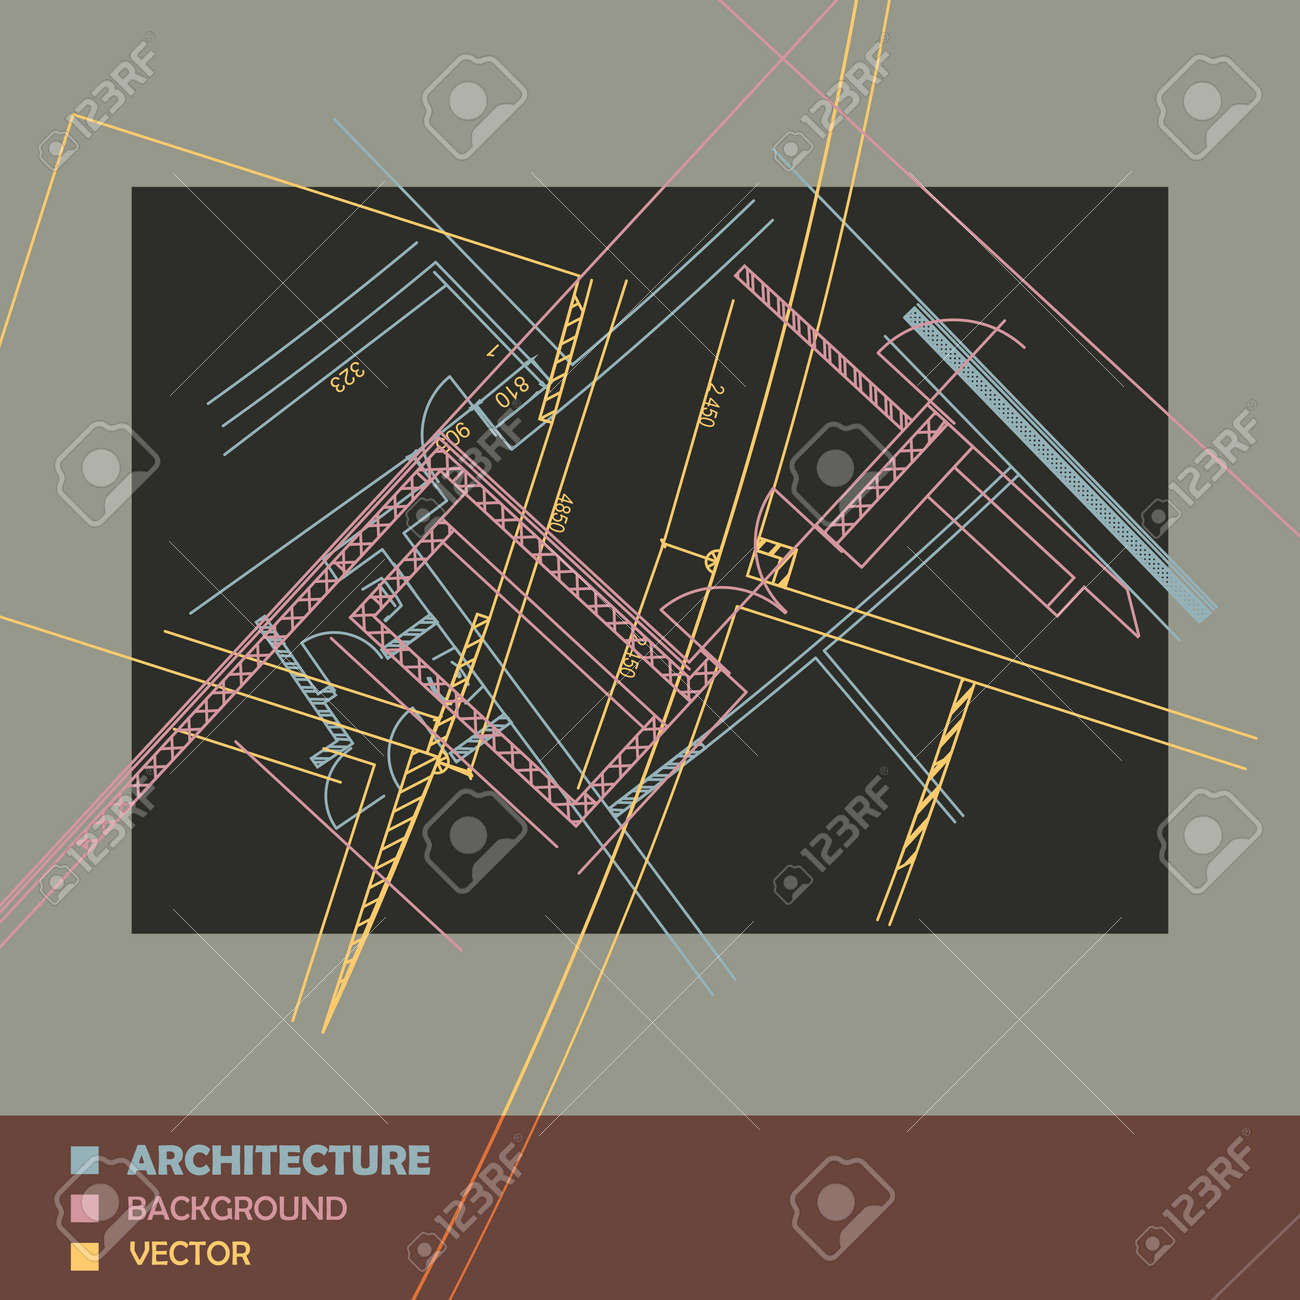 Drawing of abstract architectural detail on flat surface image drawing of abstract architectural detail on flat surface image of colorful blueprint for use as malvernweather Image collections